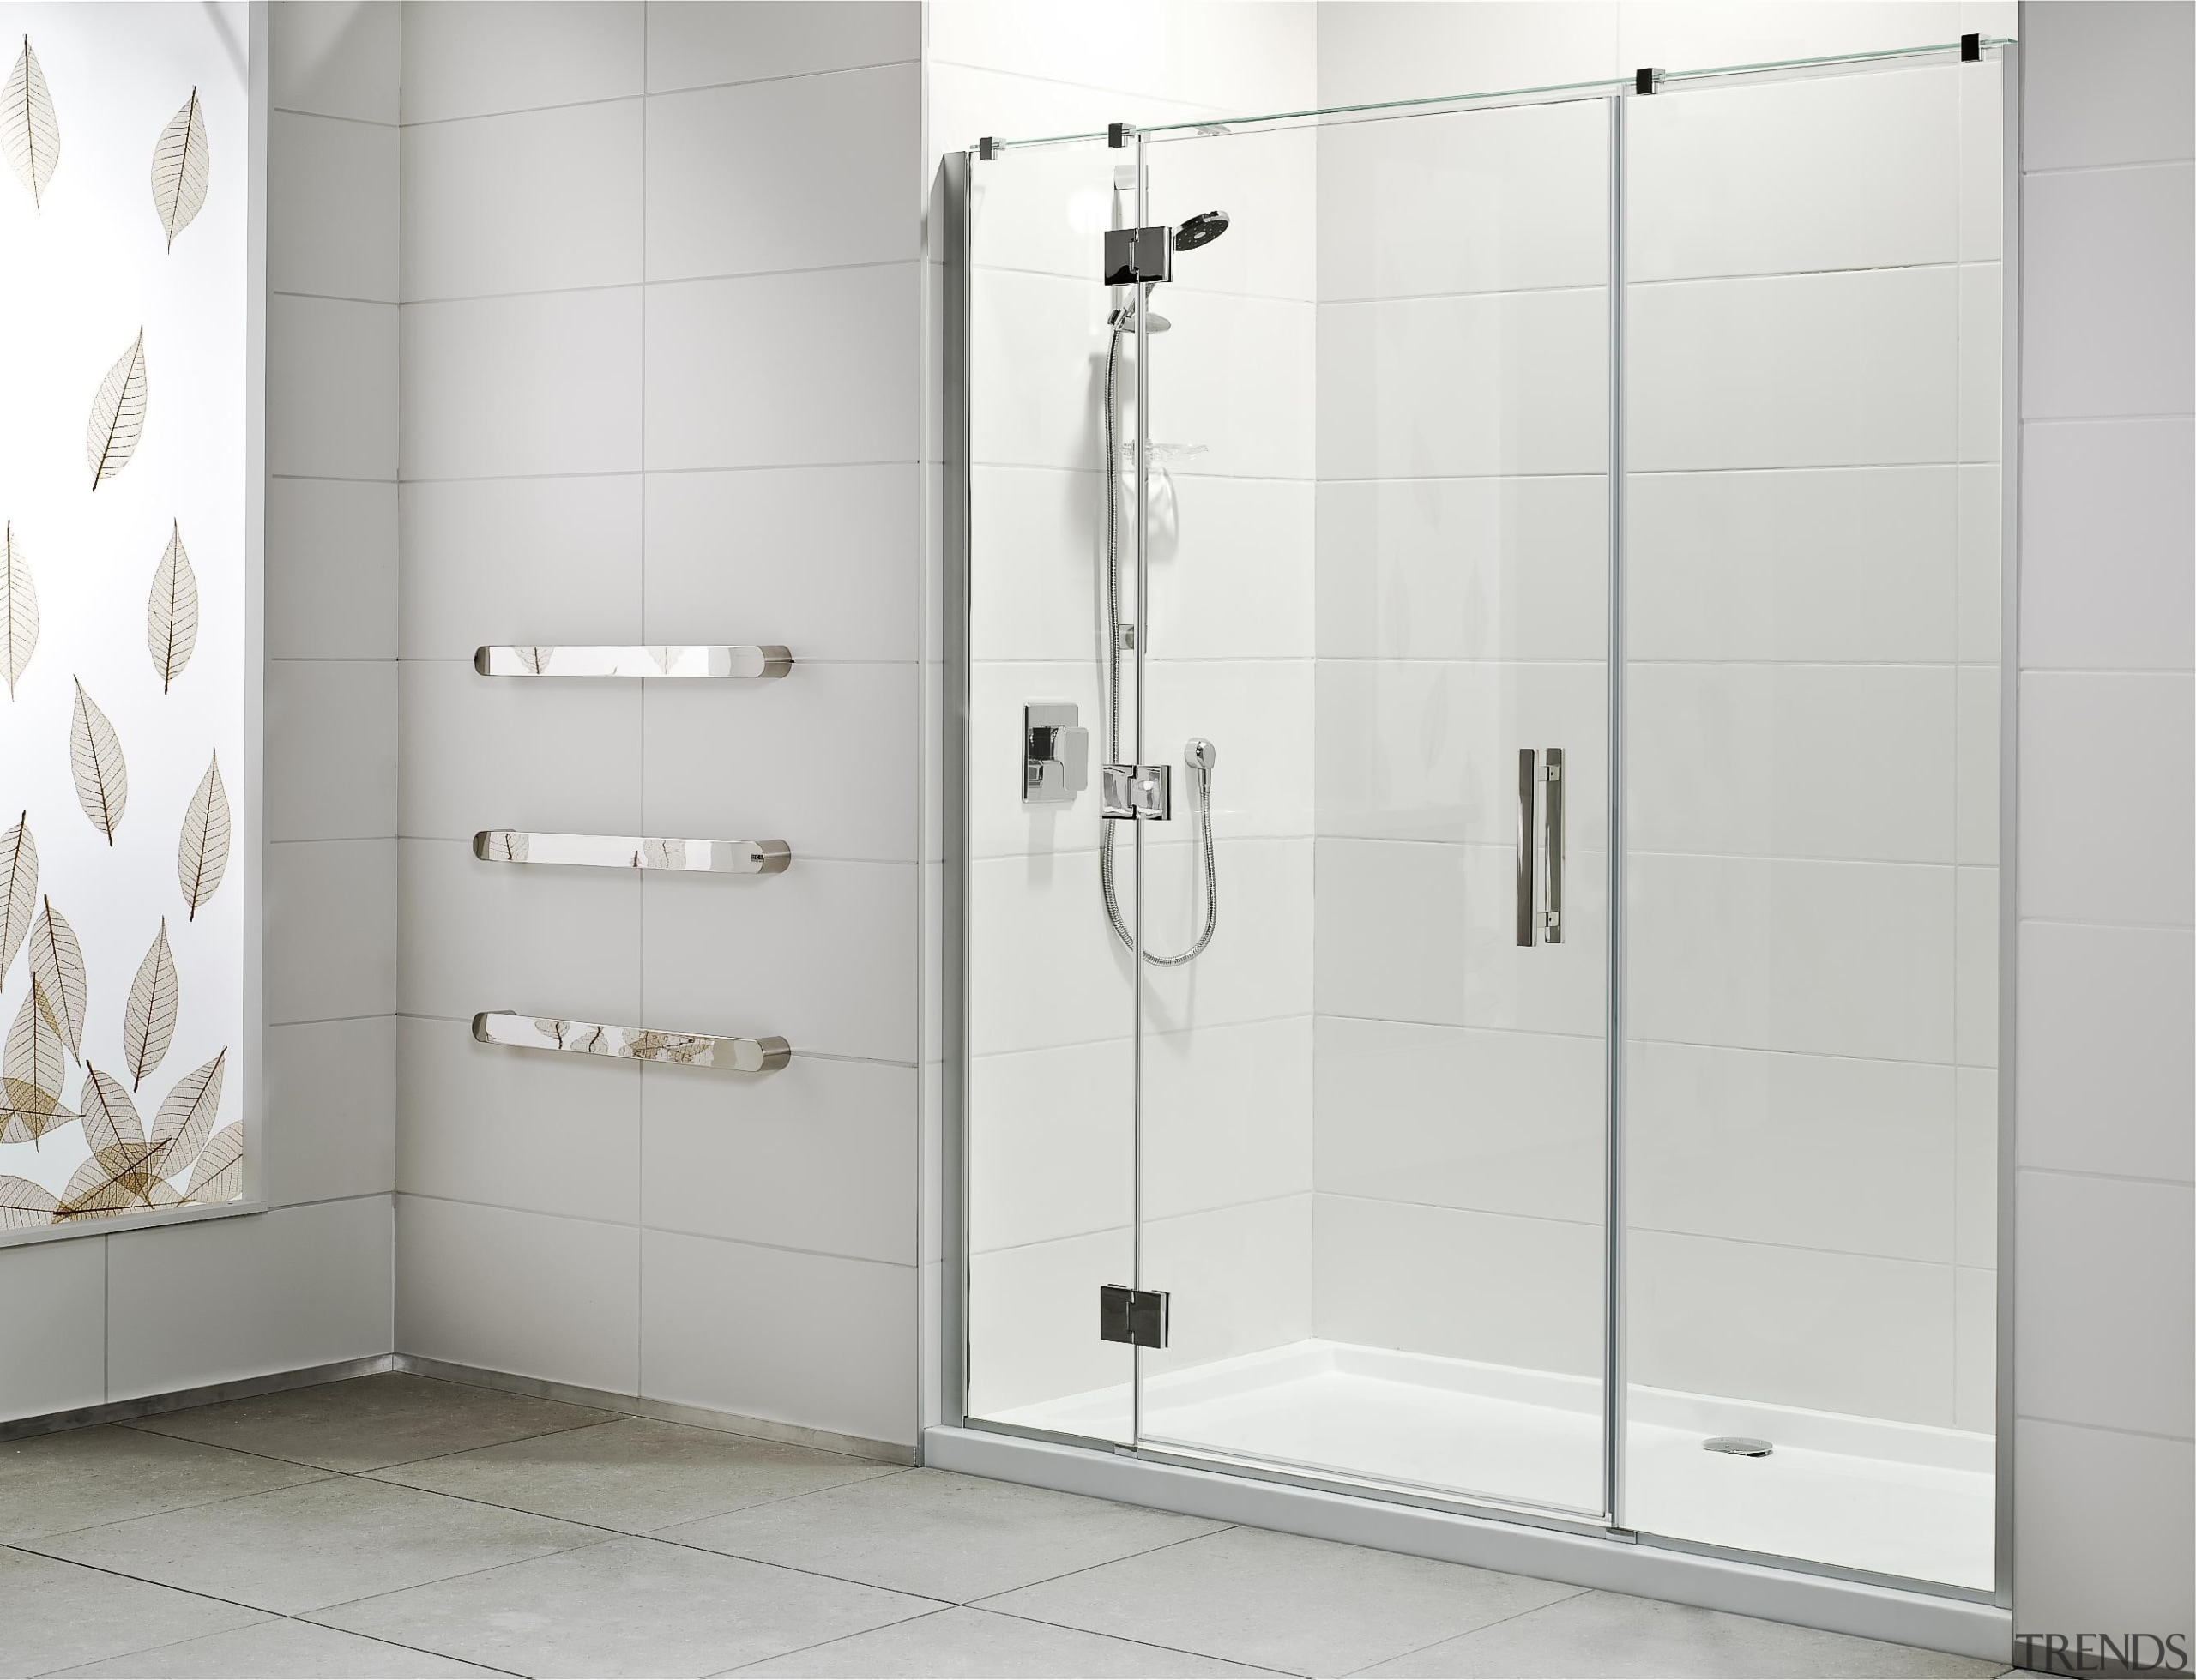 Designed specifically for modern New Zealand bathrooms, the angle, bathroom, plumbing fixture, product, shower, shower door, tap, white, gray